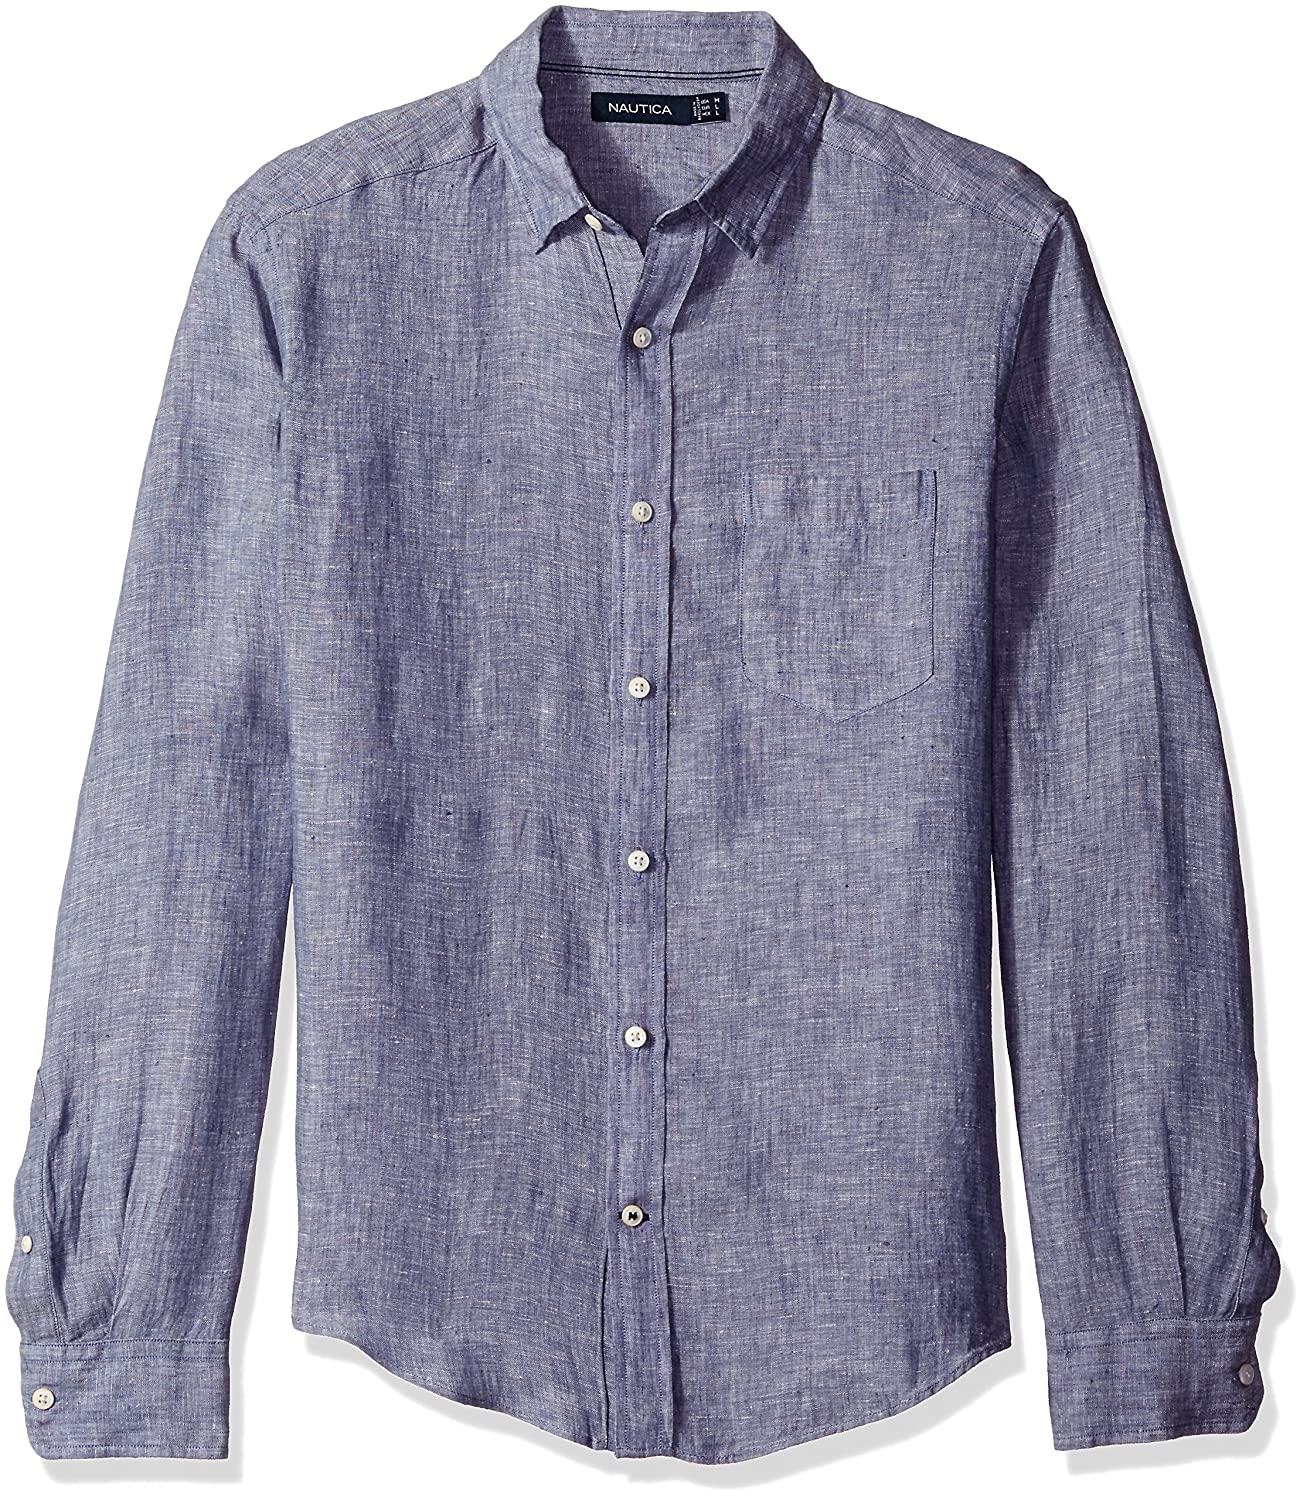 Nautica Mens Long Sleeve Solid Color Button Down Linen Shirt At